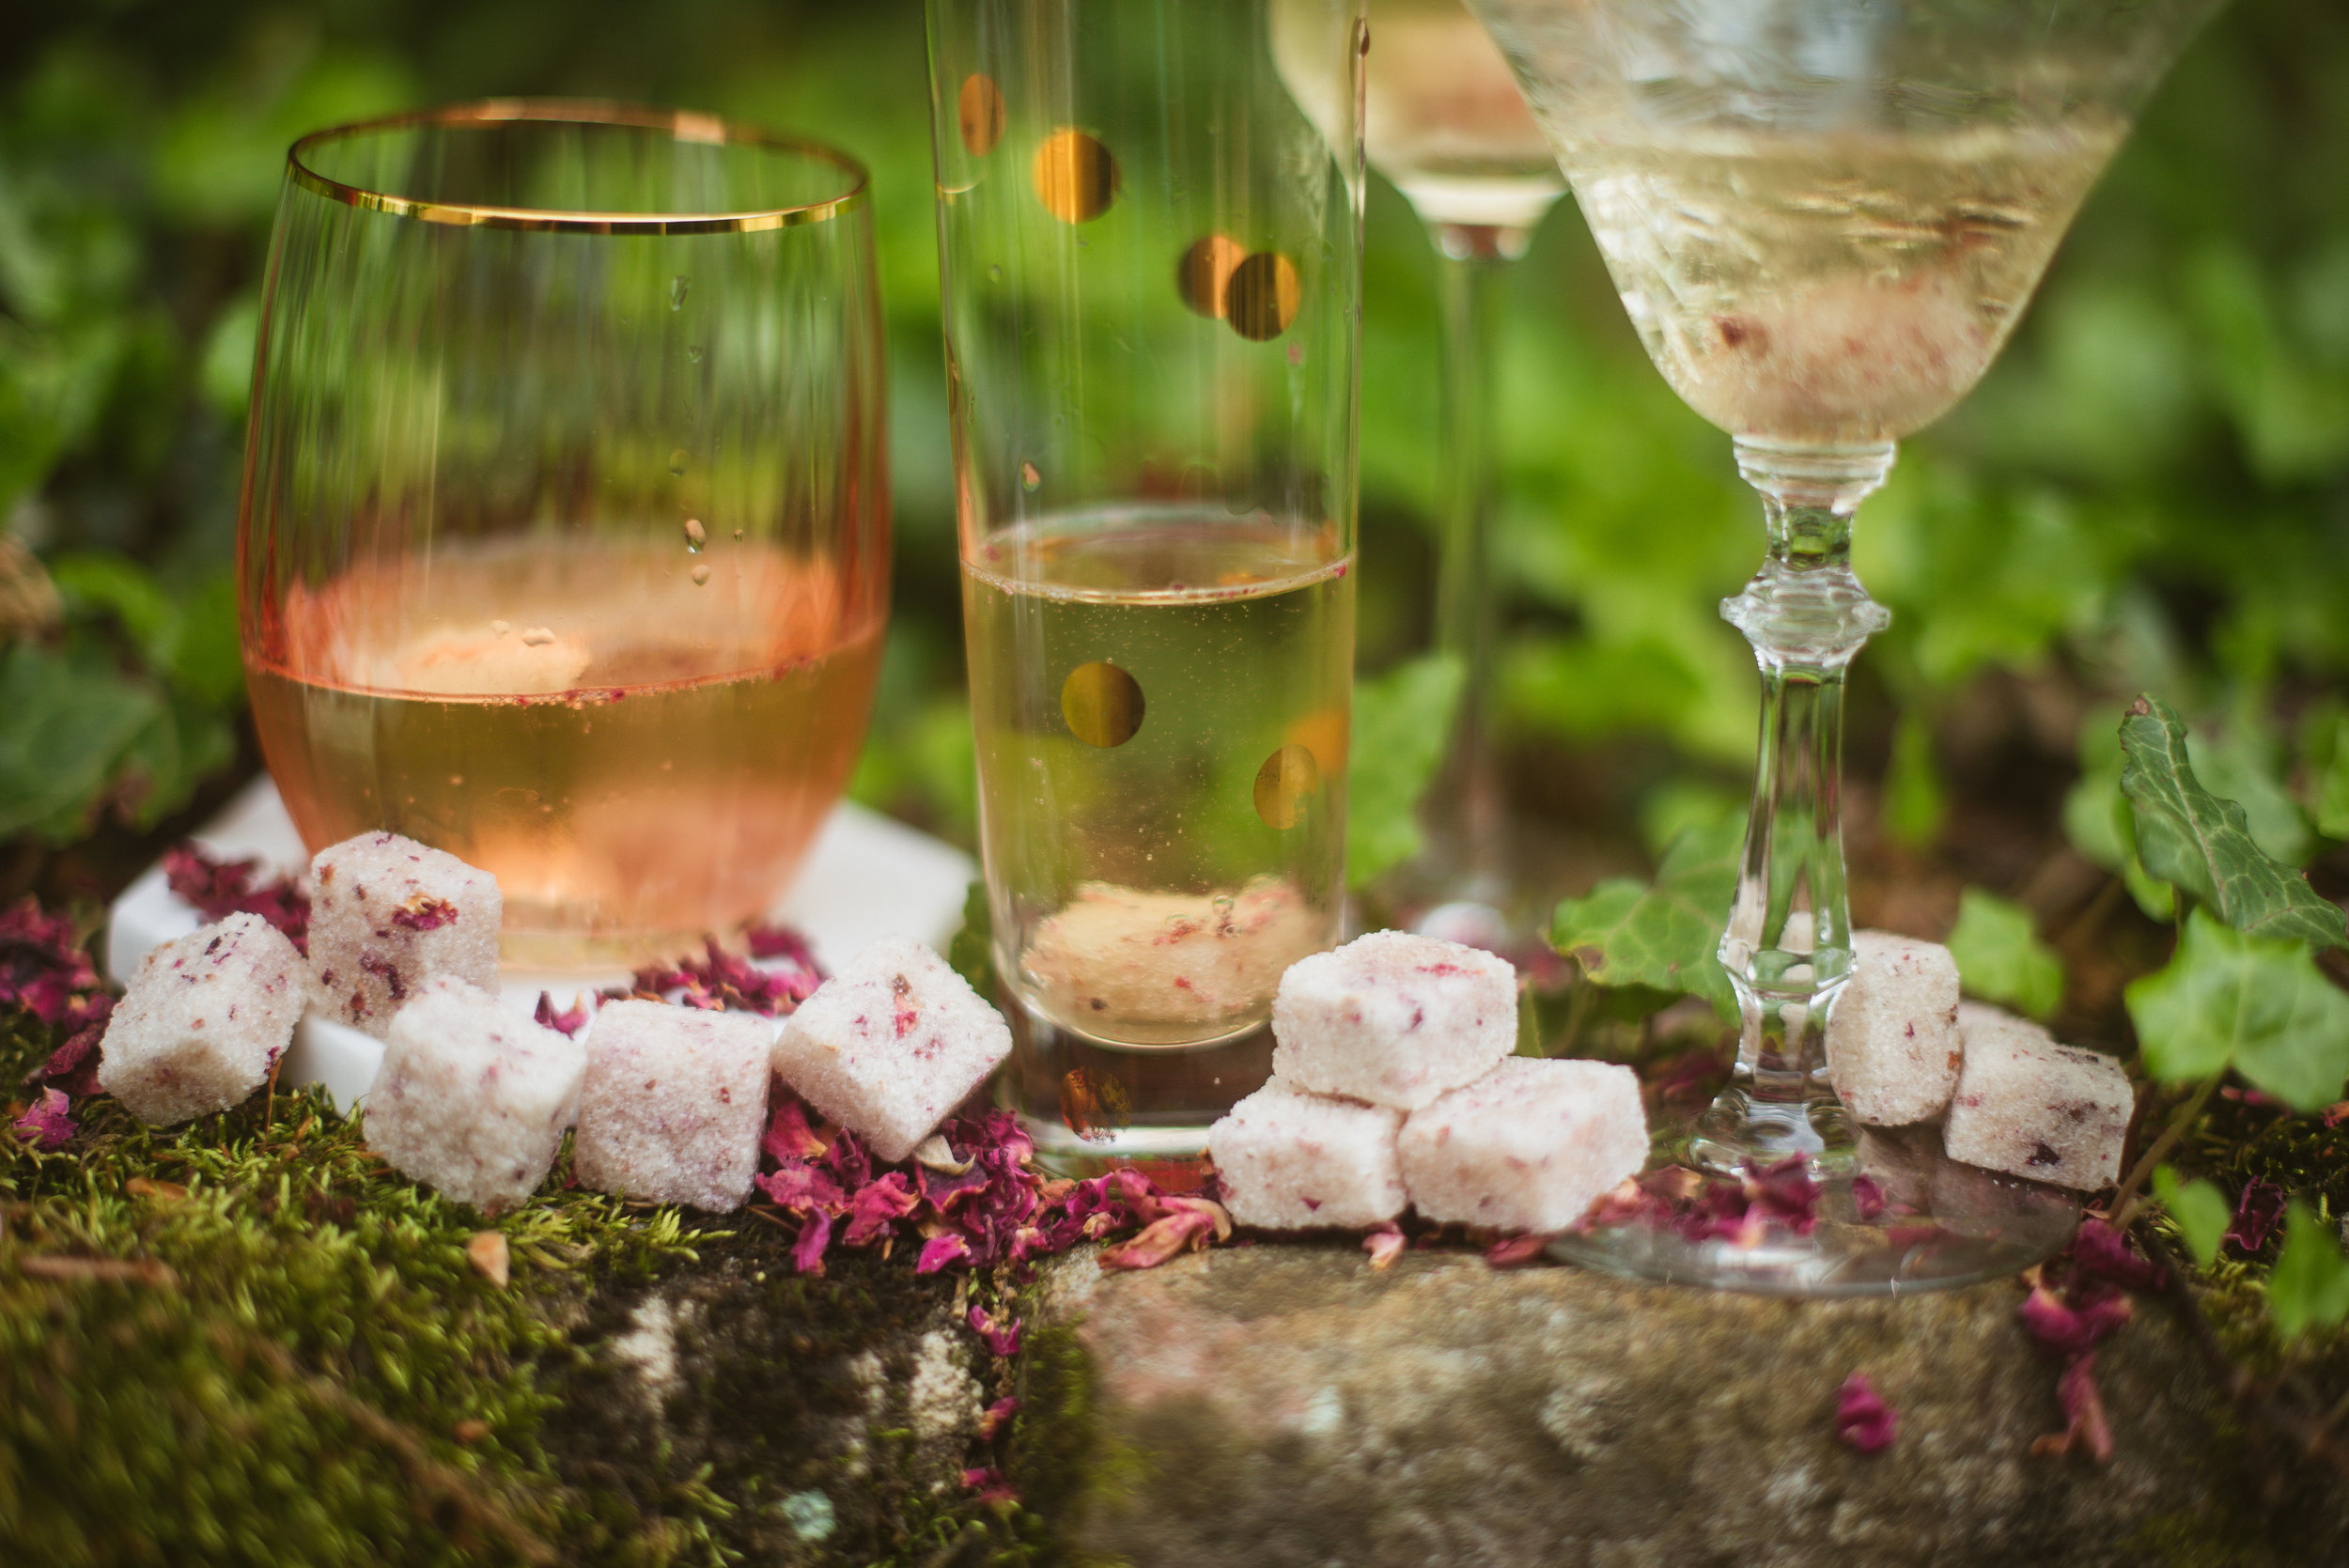 Sparkling Rose Cocktail - Pour a glass of your favorite dry Champagne or other sparkling wine. Place one Rose Petal Sugar Cube in your glass. Savor the bubbles and the rose petal bouquet.